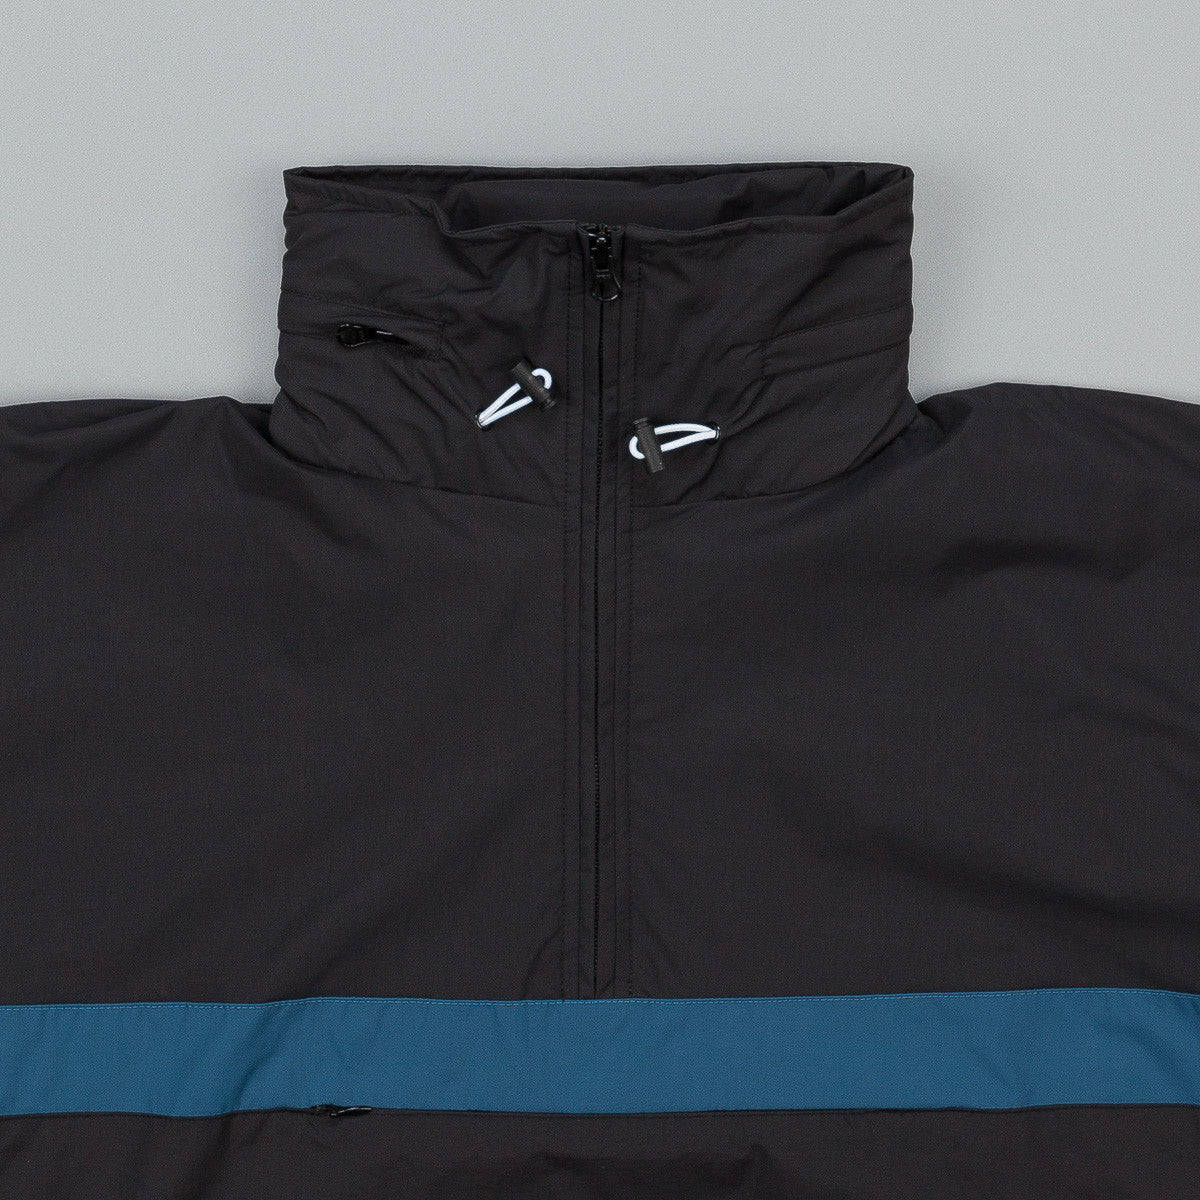 Parra 1994 Windbreaker Jacket - Black